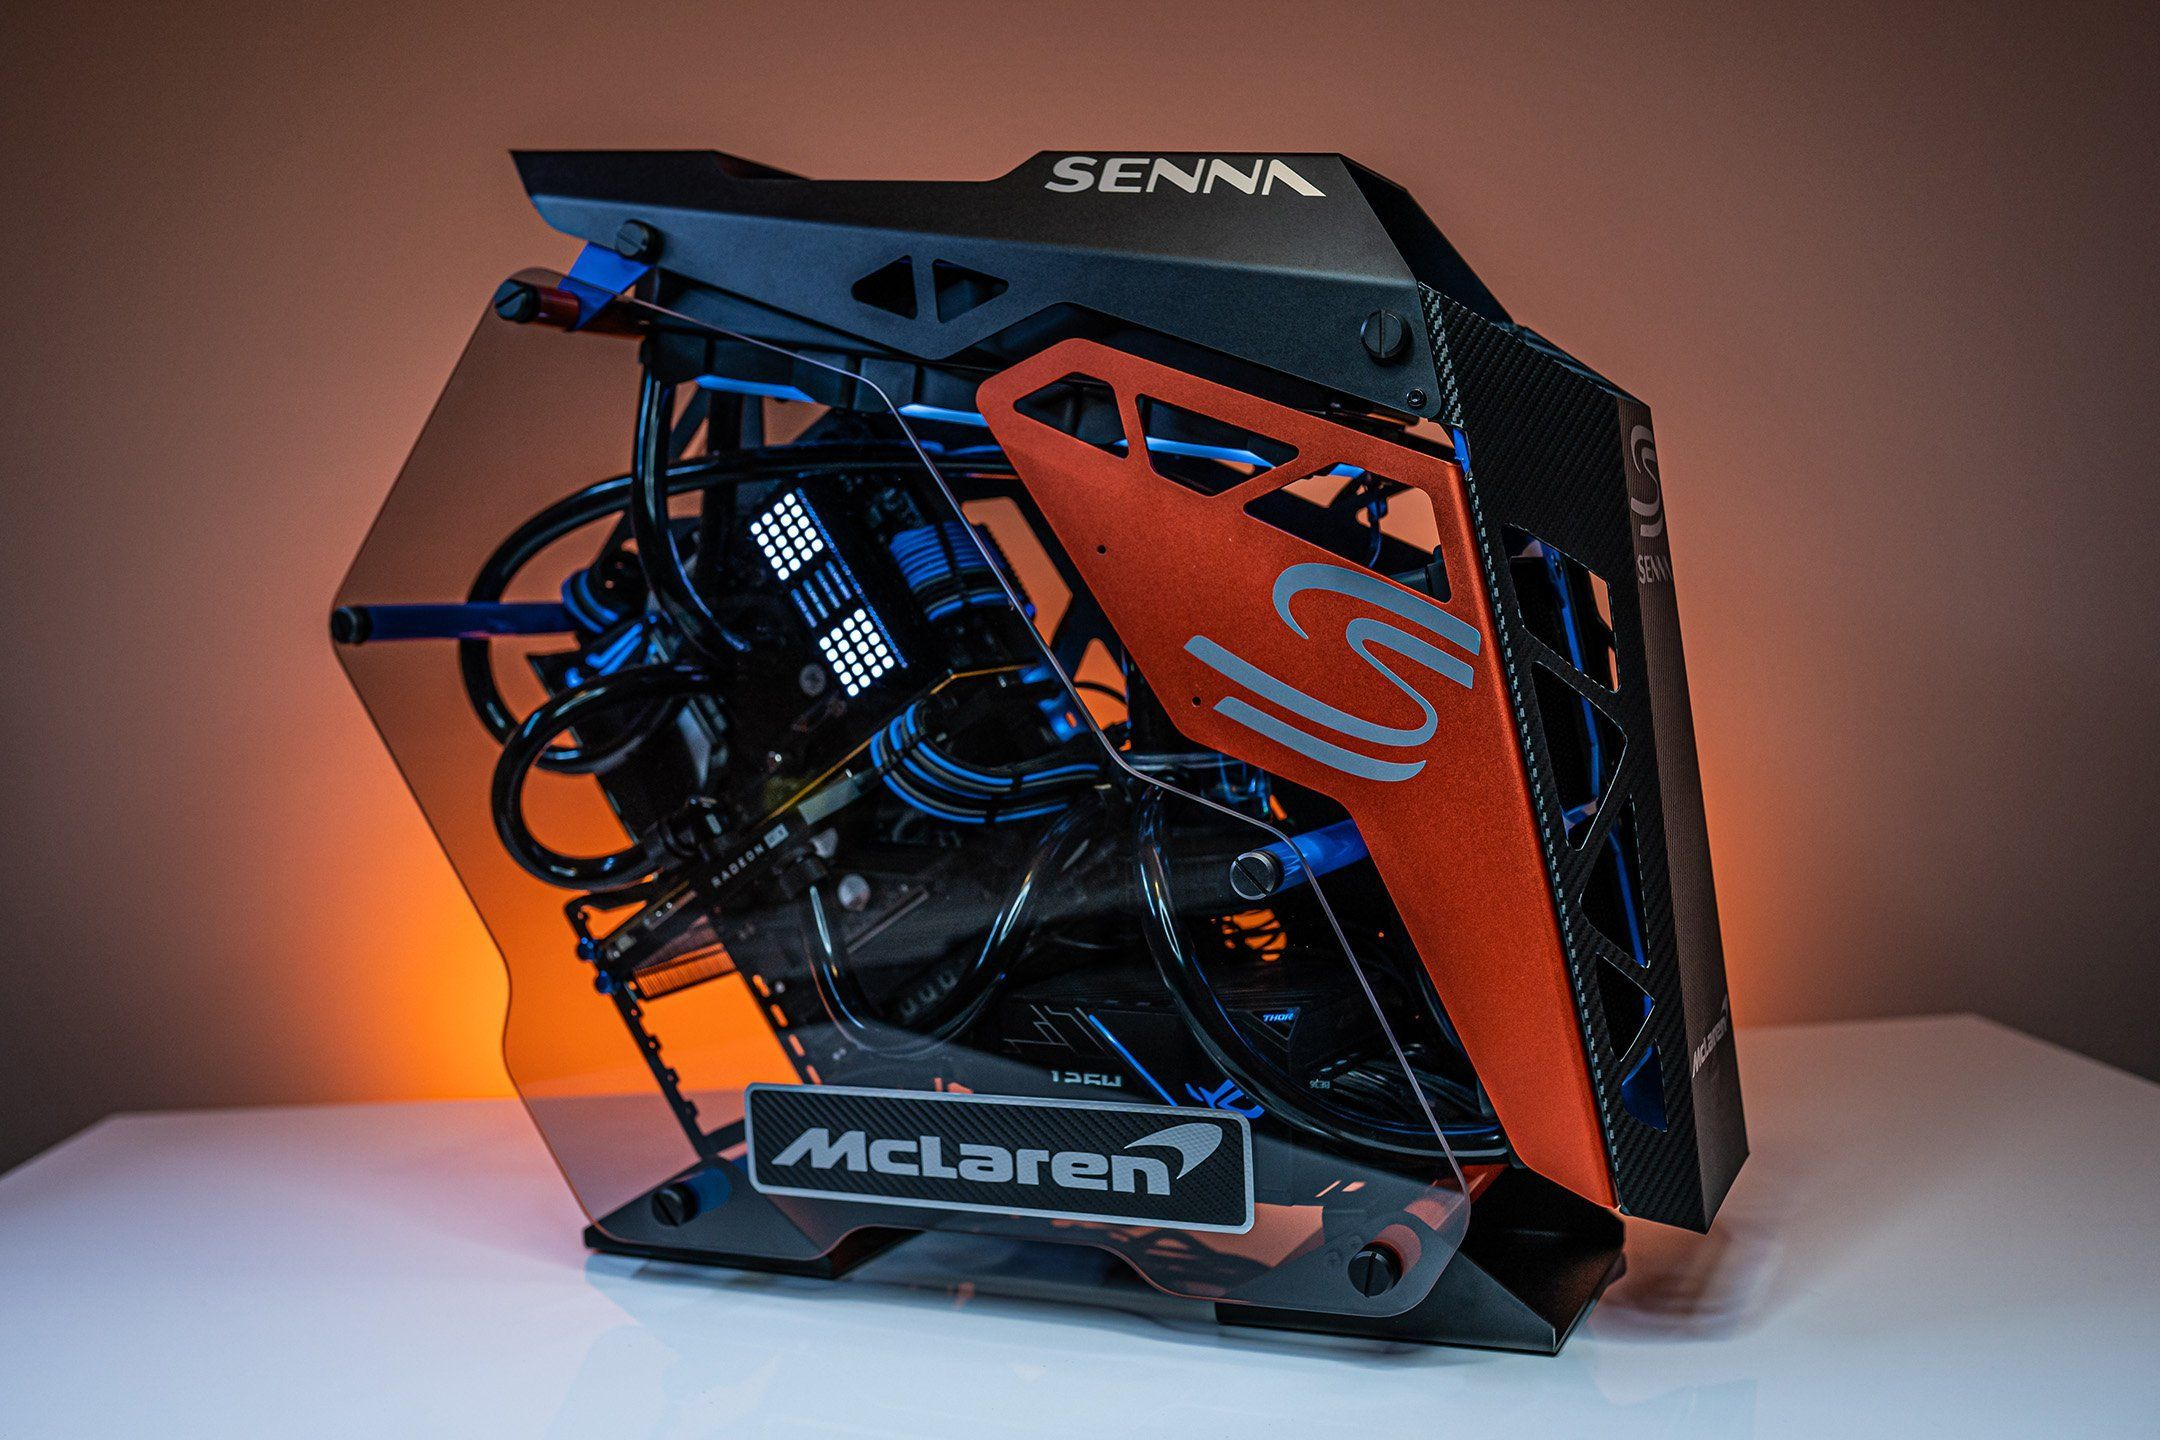 If the mclaren senna was a gaming pc itd look like this